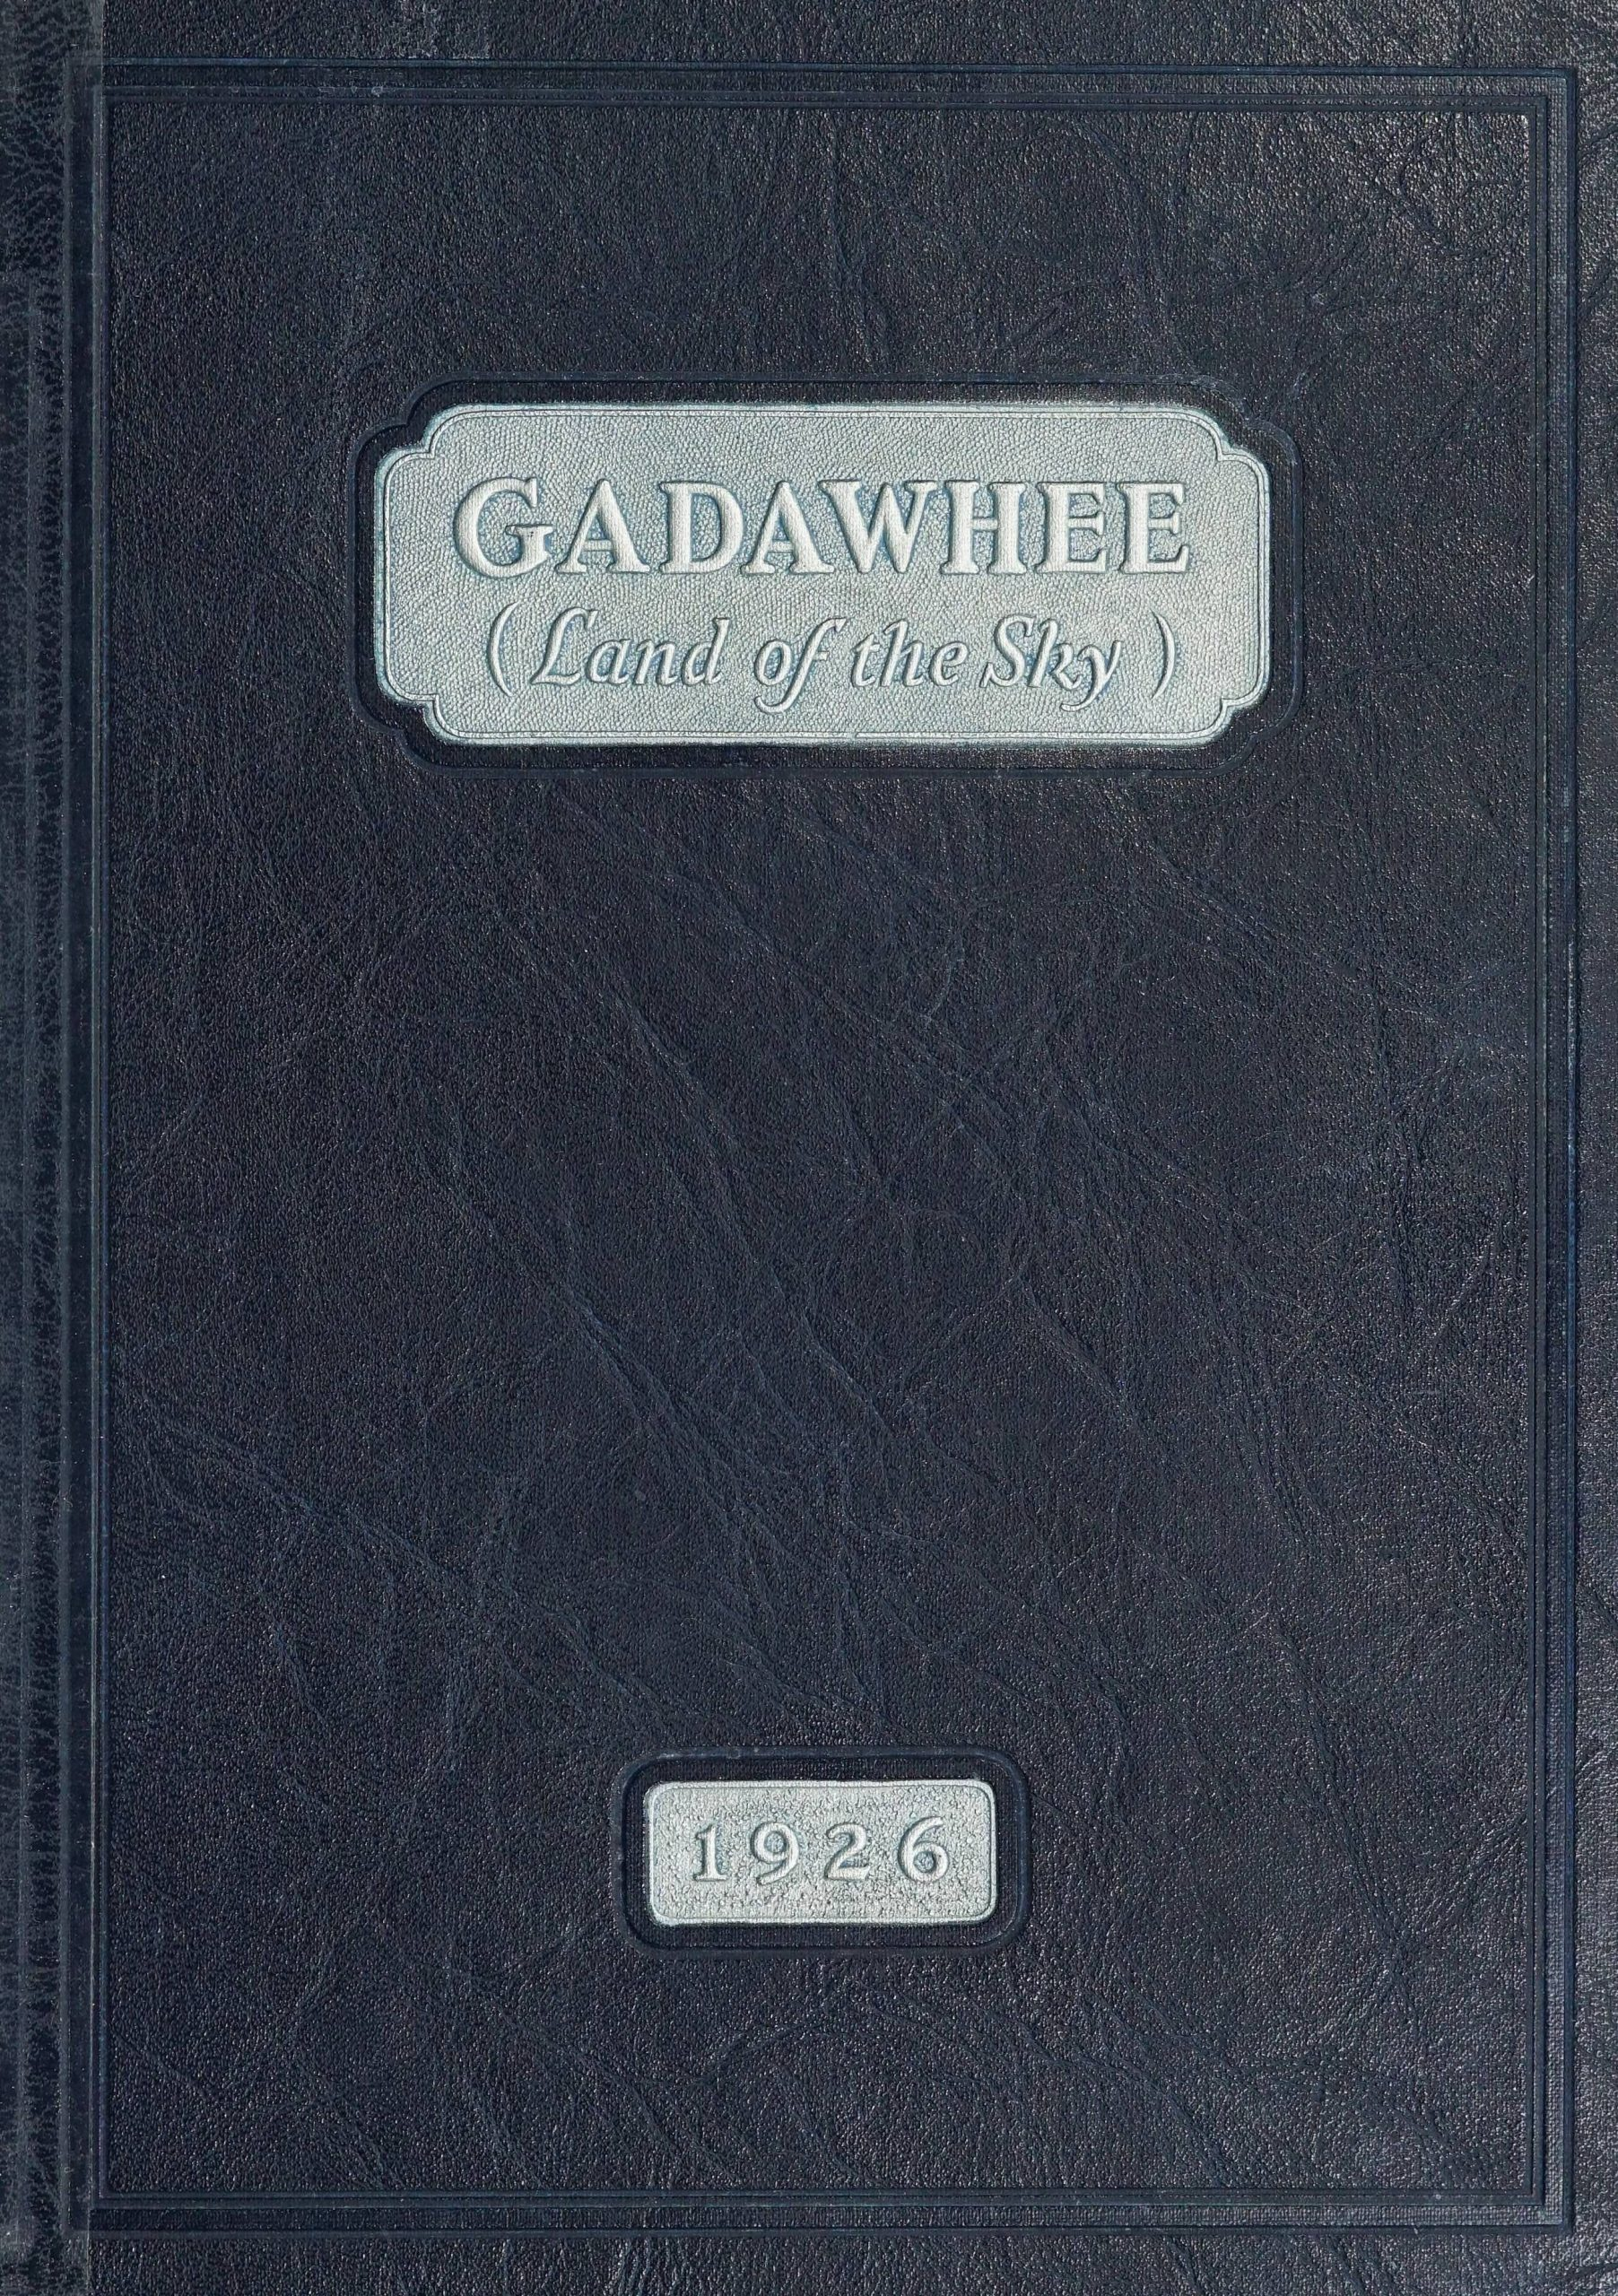 Cover of the Blue Ridge School for Boys 1926 yearbook, Gadawhee (Land of the Sky).